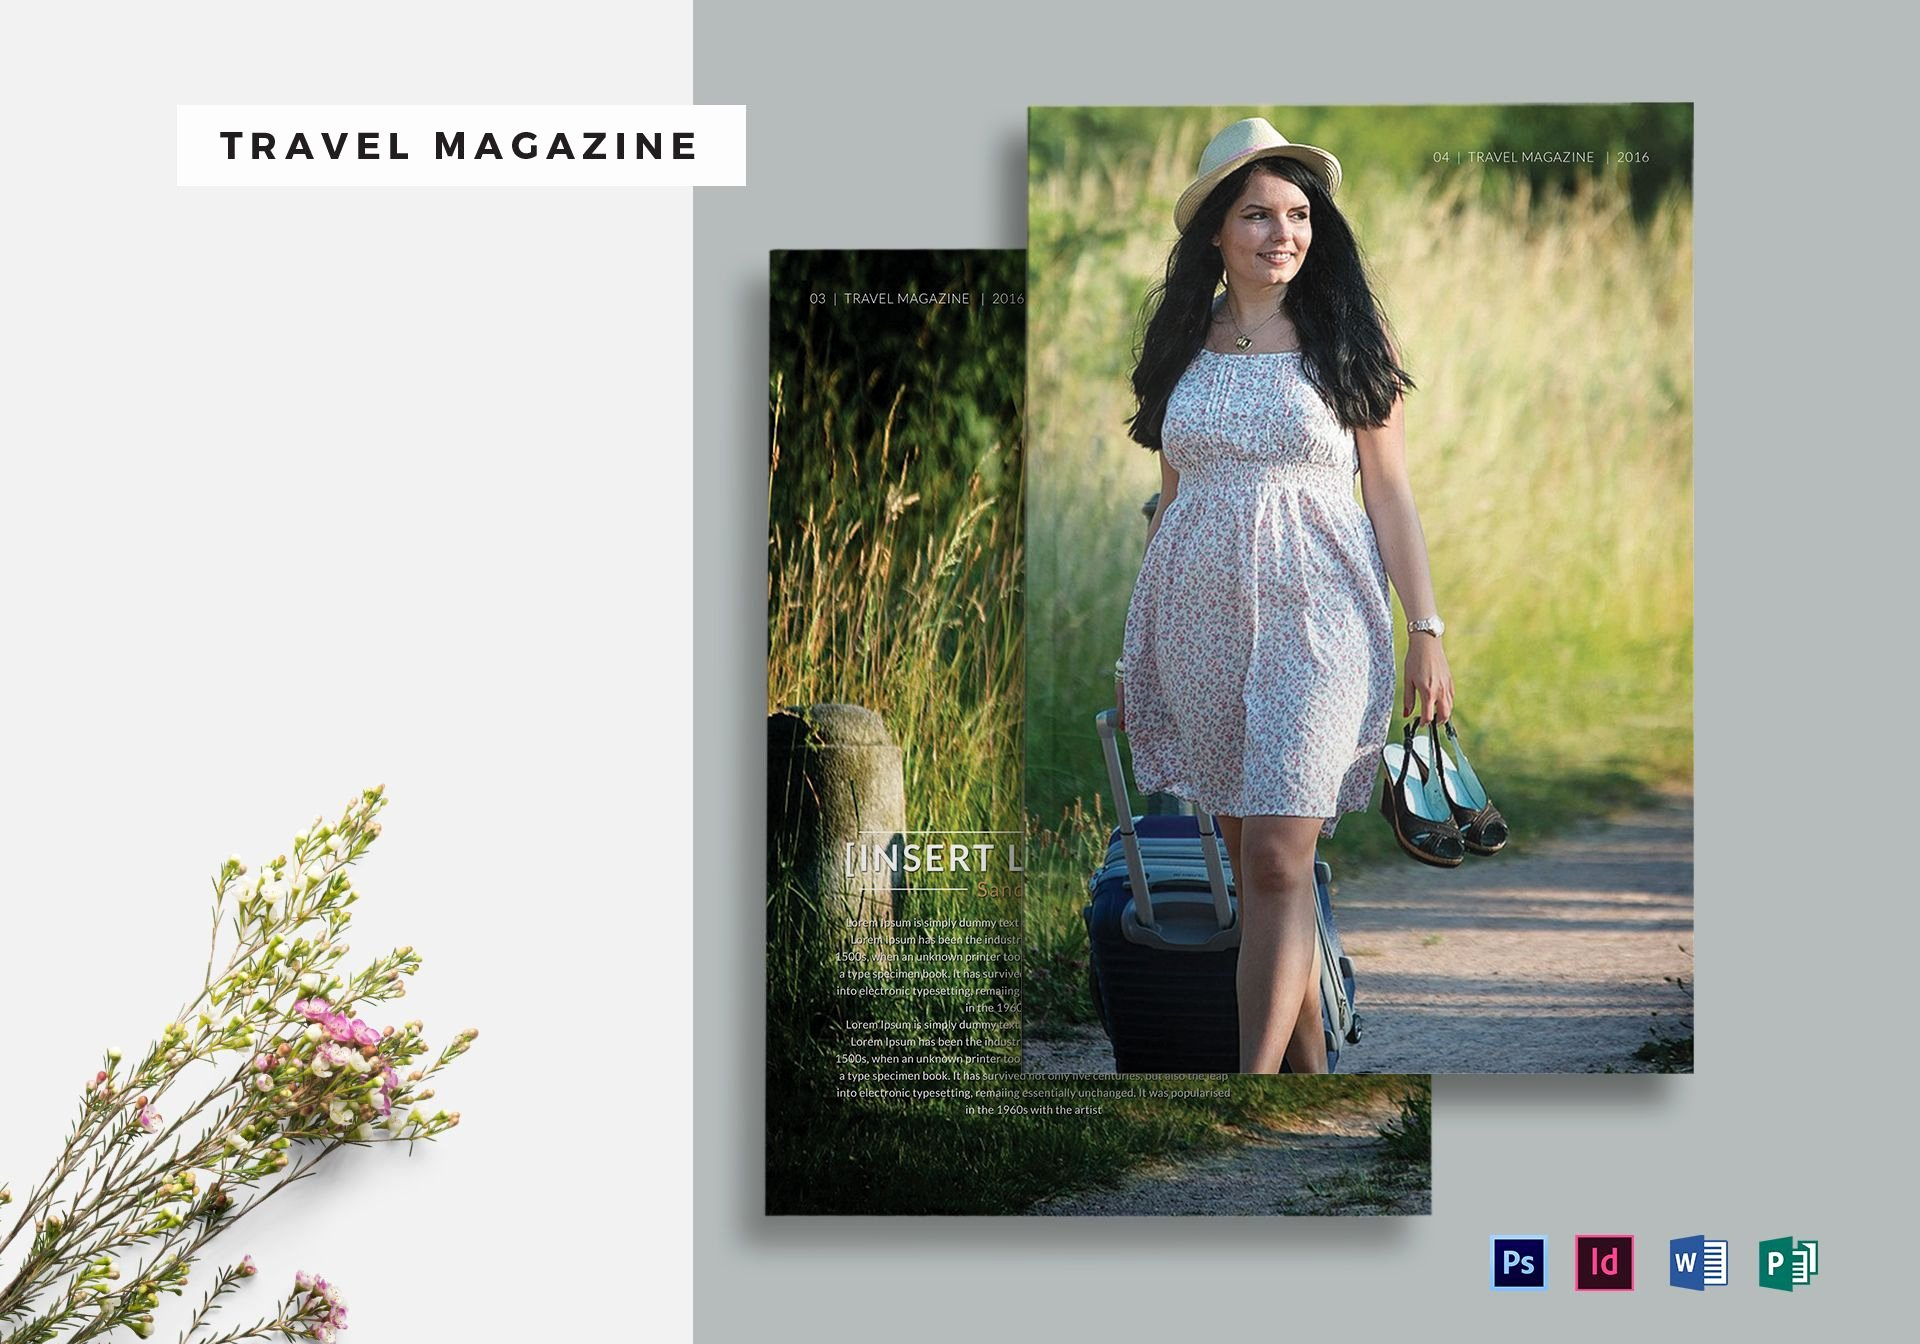 Magazine Templates for Word Lovely Travel Magazine Template In Psd Word Publisher Indesign